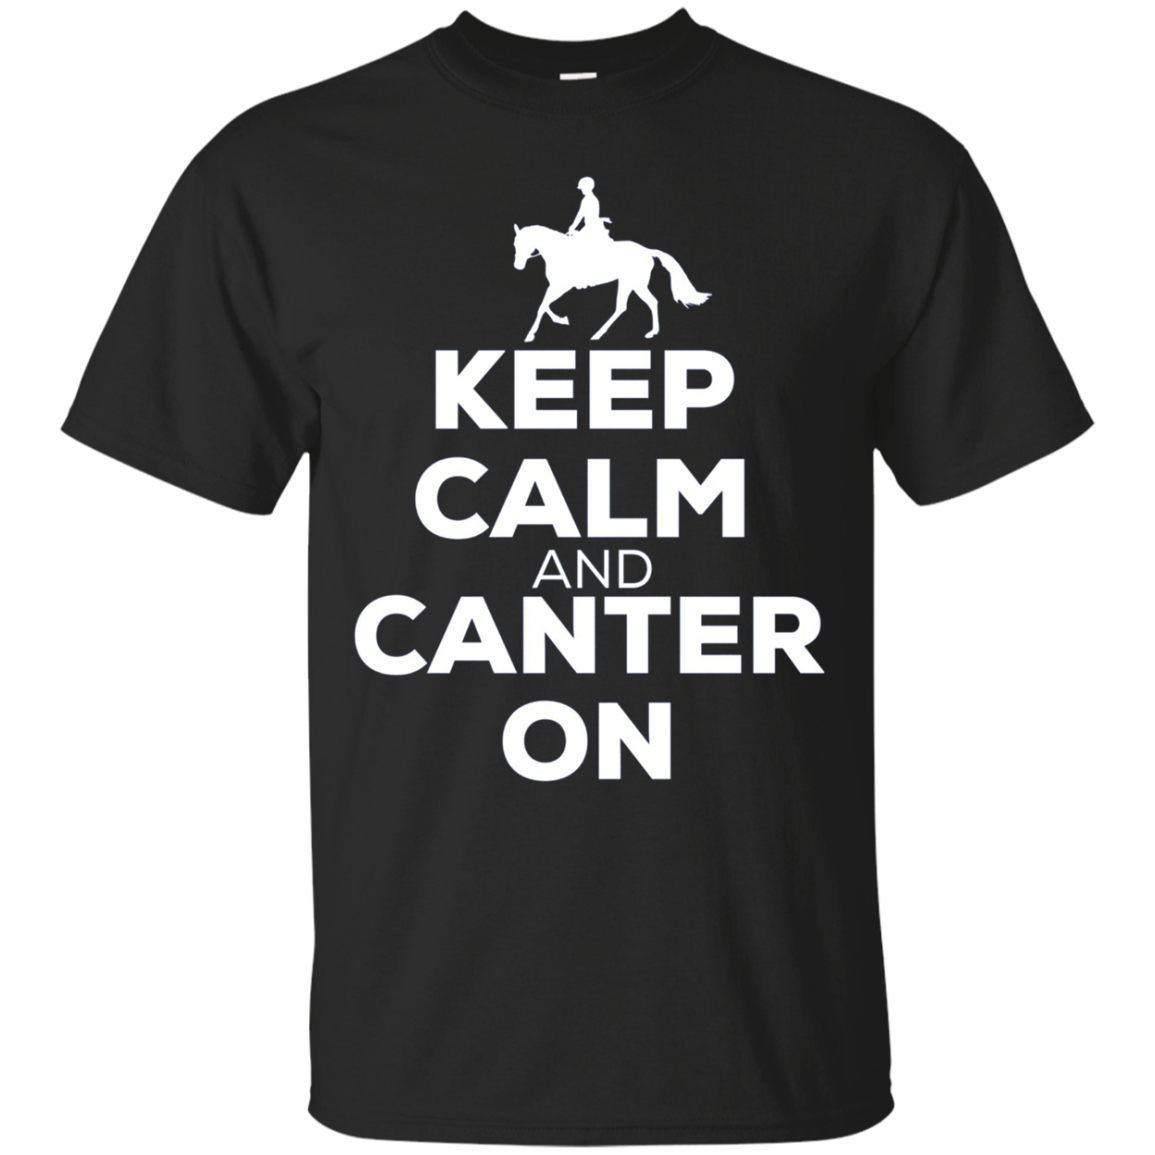 Keep Calm And Canter On - Horse Riding Long Sleeve Shirt